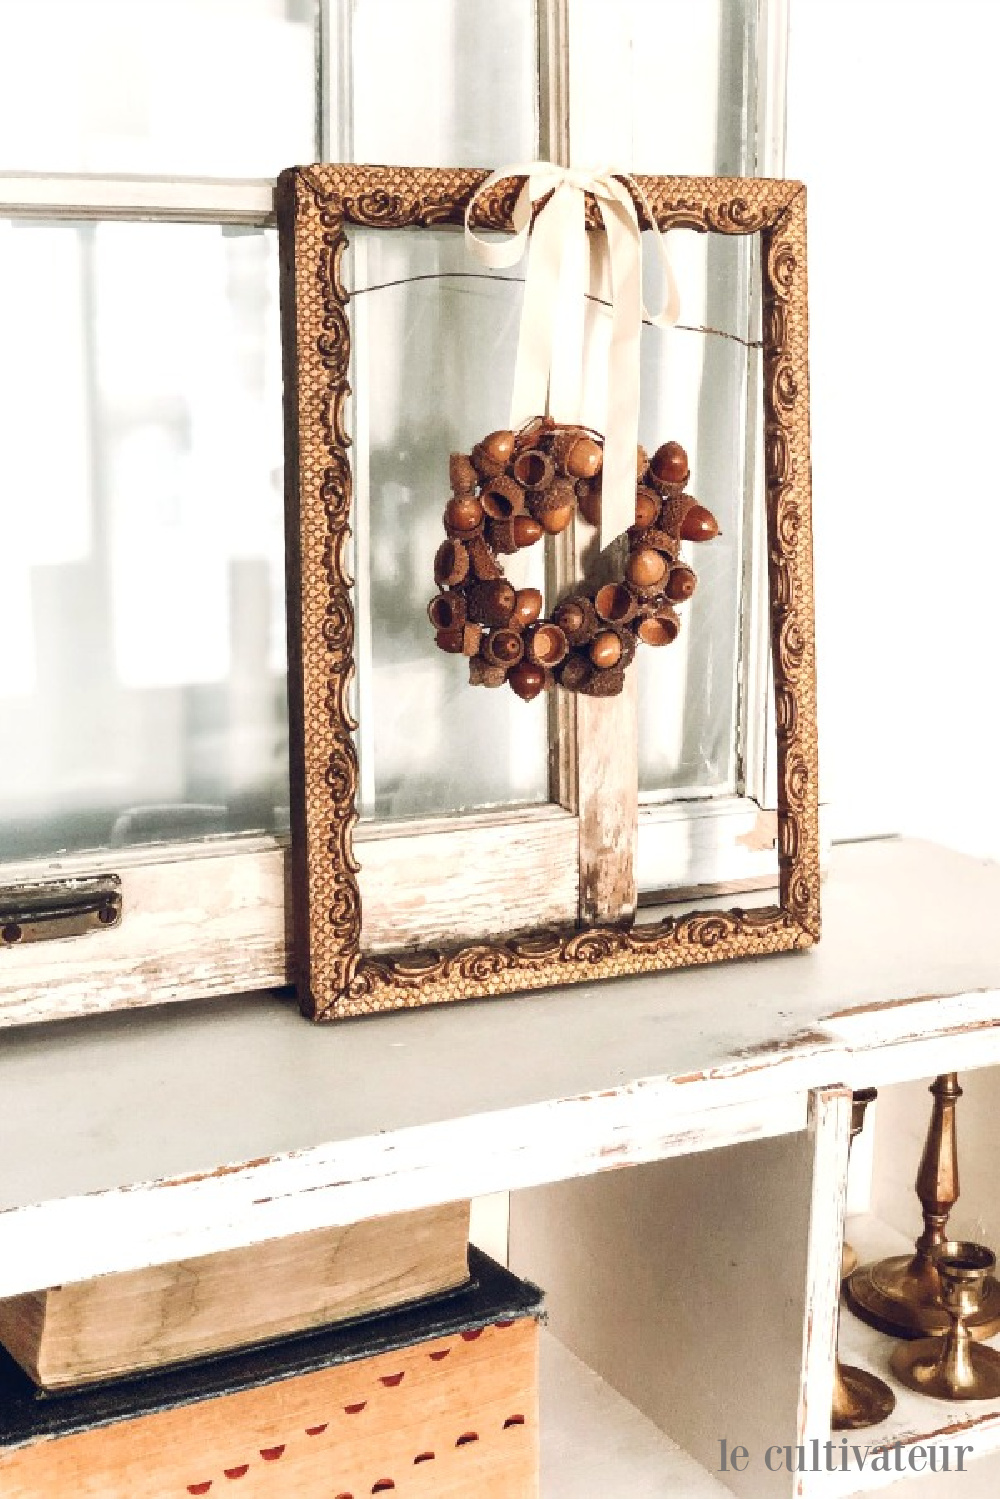 Sweet and rustic acorn wreath hangs on ribbon from vintage frame in a lovely French country white fall vignette - Le Cultivateur. #falldecor #fallwreaths #acornwreath